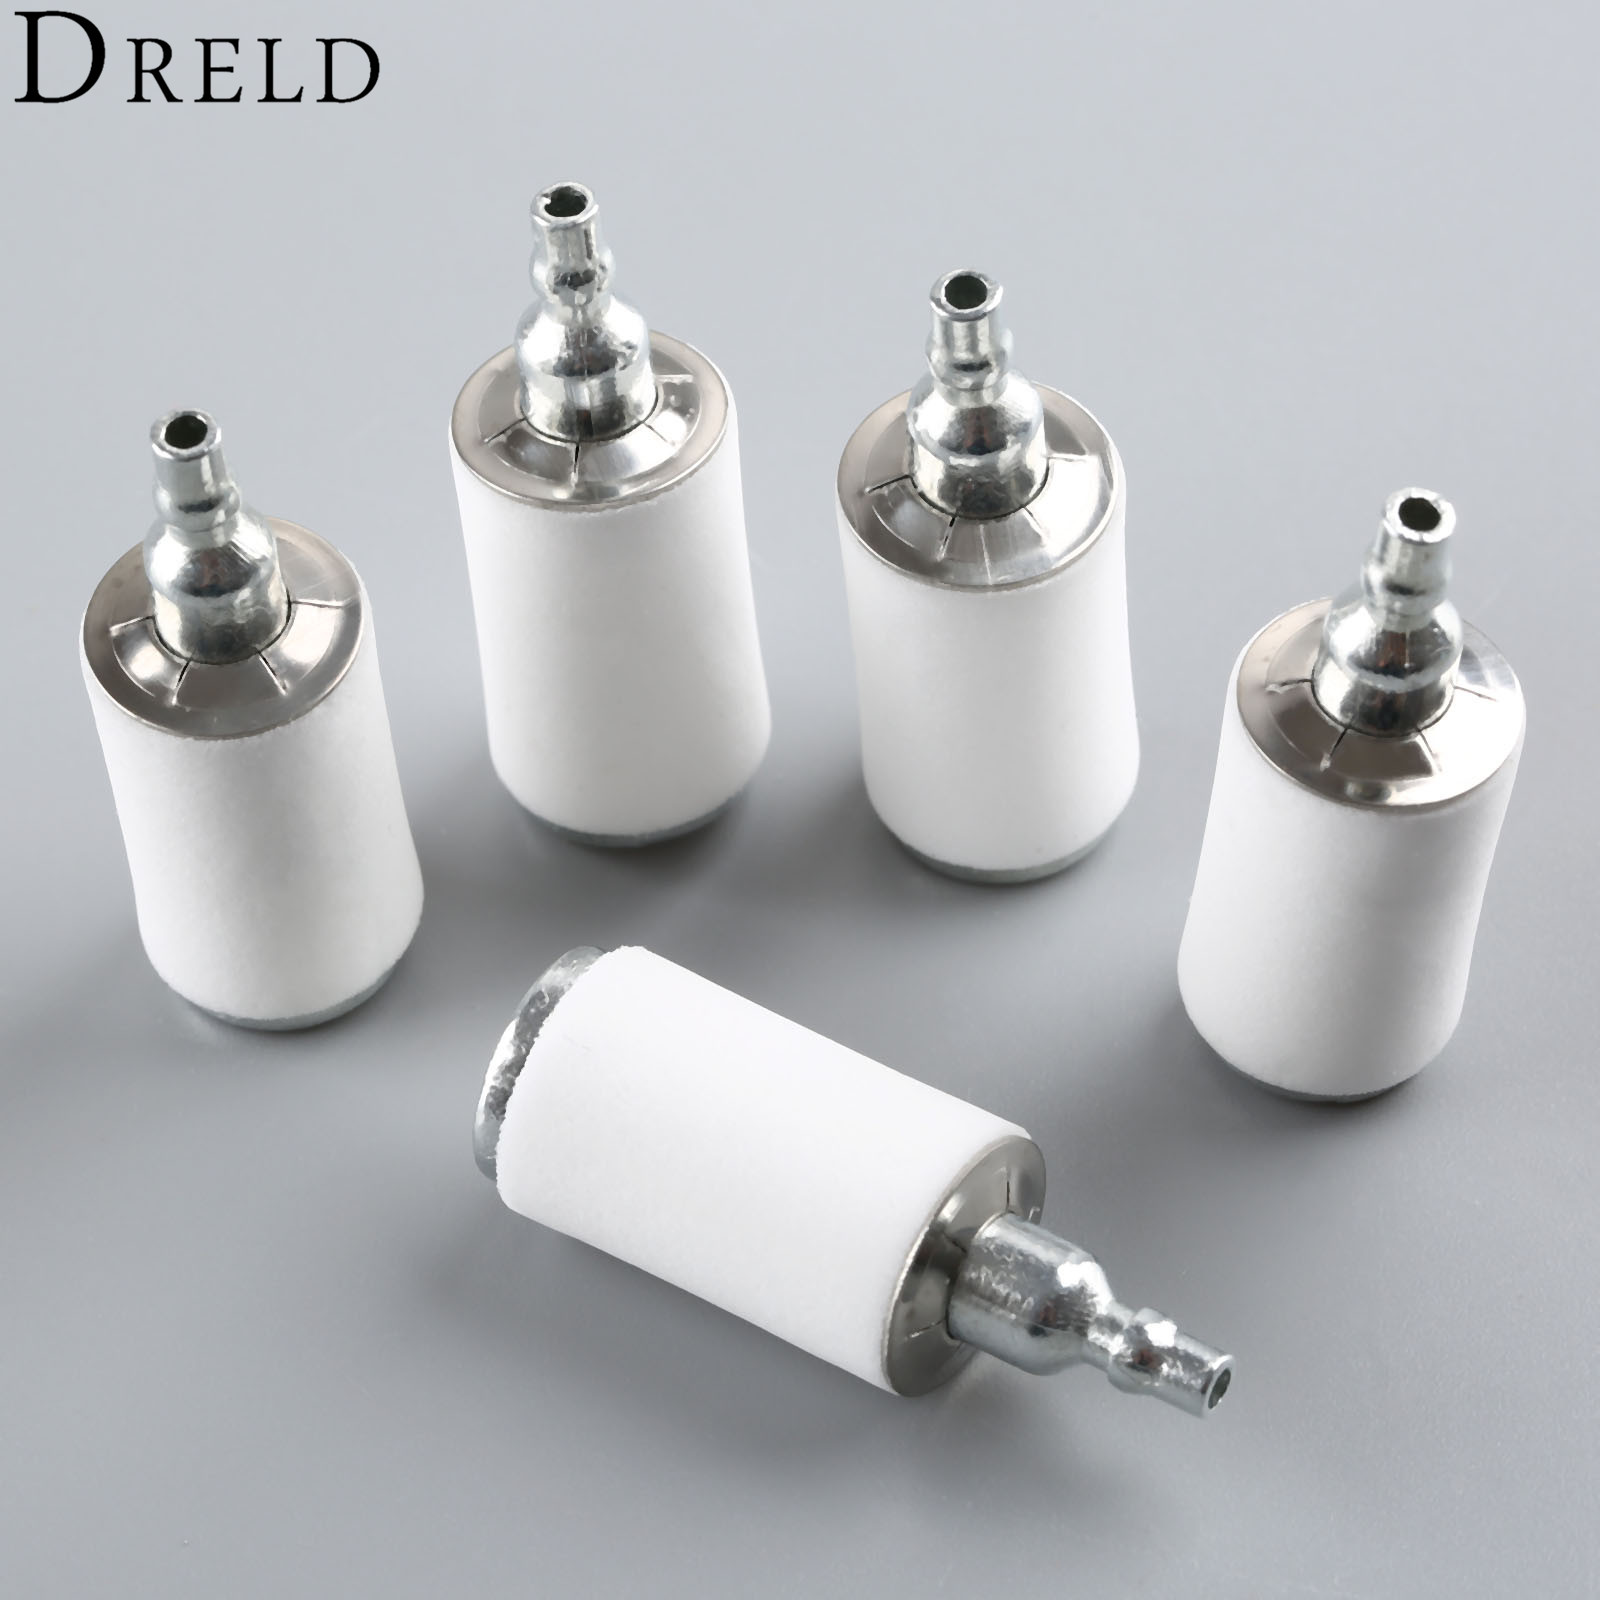 DRELD 5Pcs Gas Fuel Filter For Weedeater Poulan 2250le P1500 P3500 Ppb330  Craftsman Trimmer Chainsaw Blower-in Tool Parts from Tools on  Aliexpress.com ...